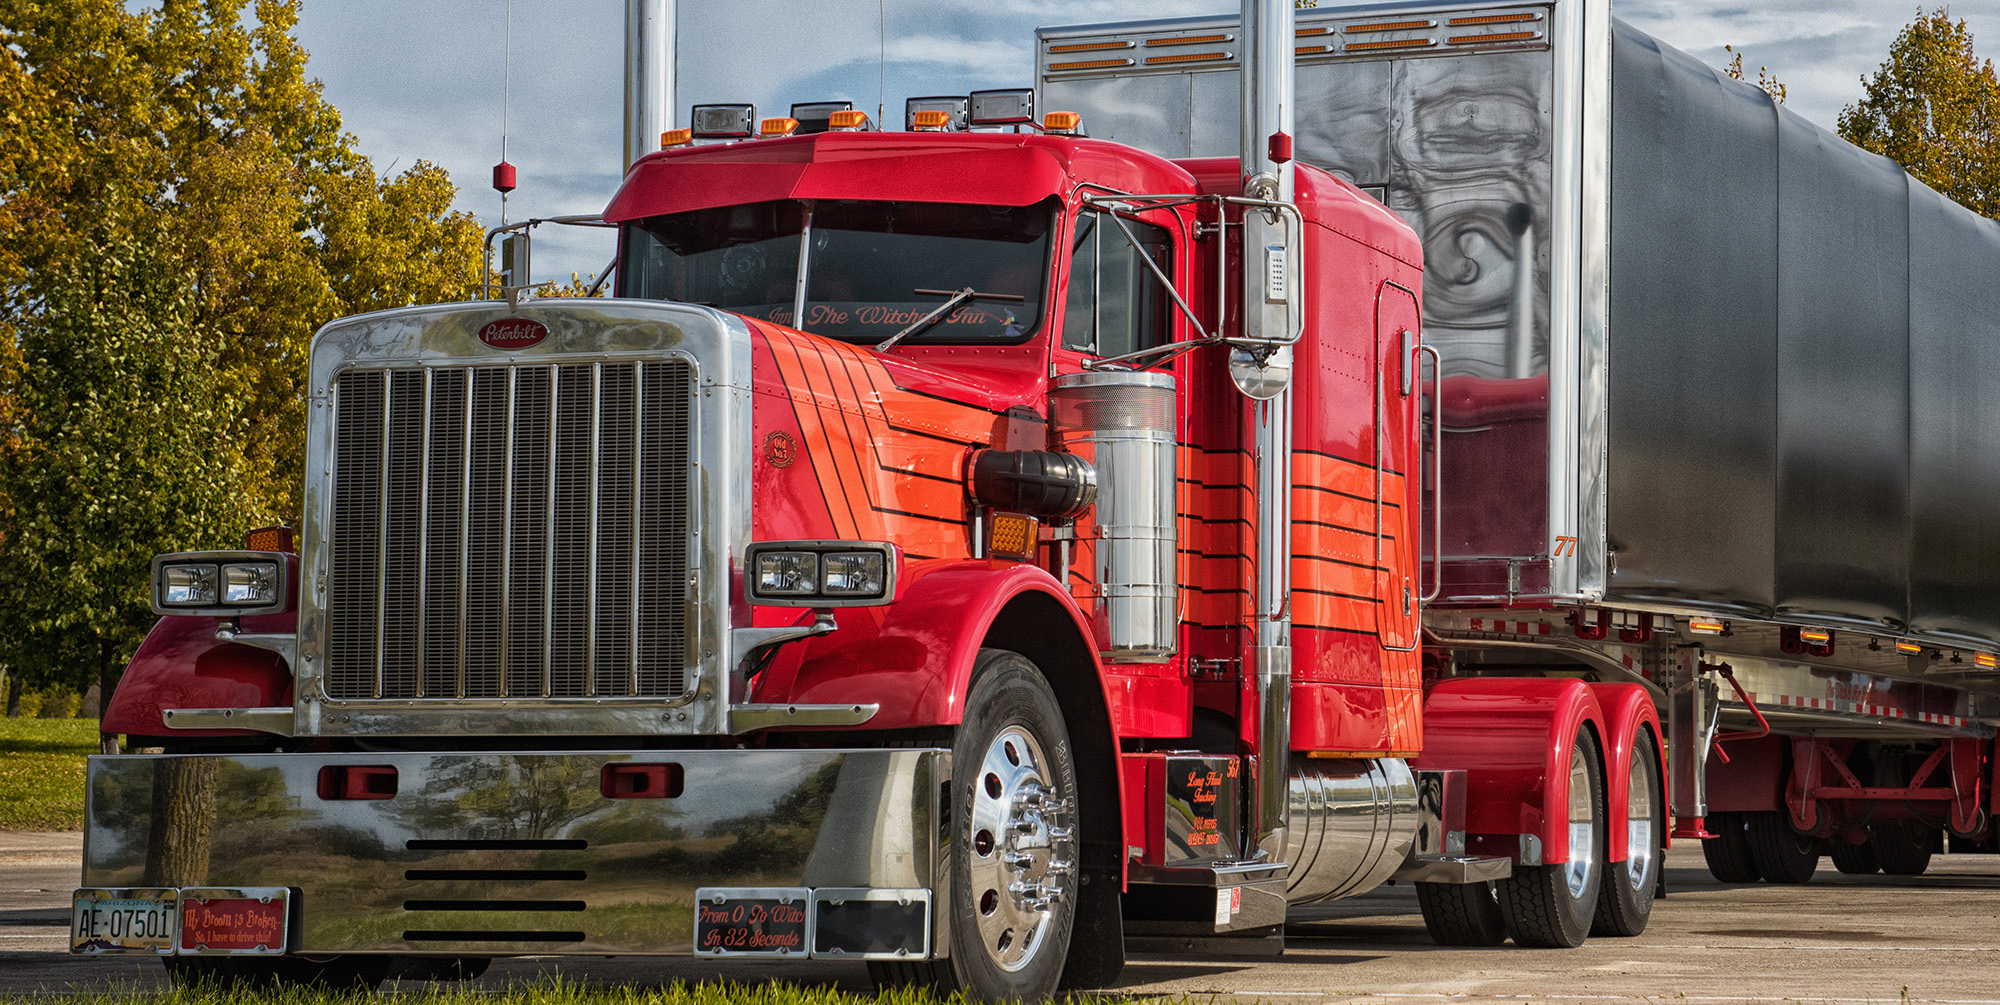 Long Haul Trucking >> November Newsletter - LHT Long Haul Trucking